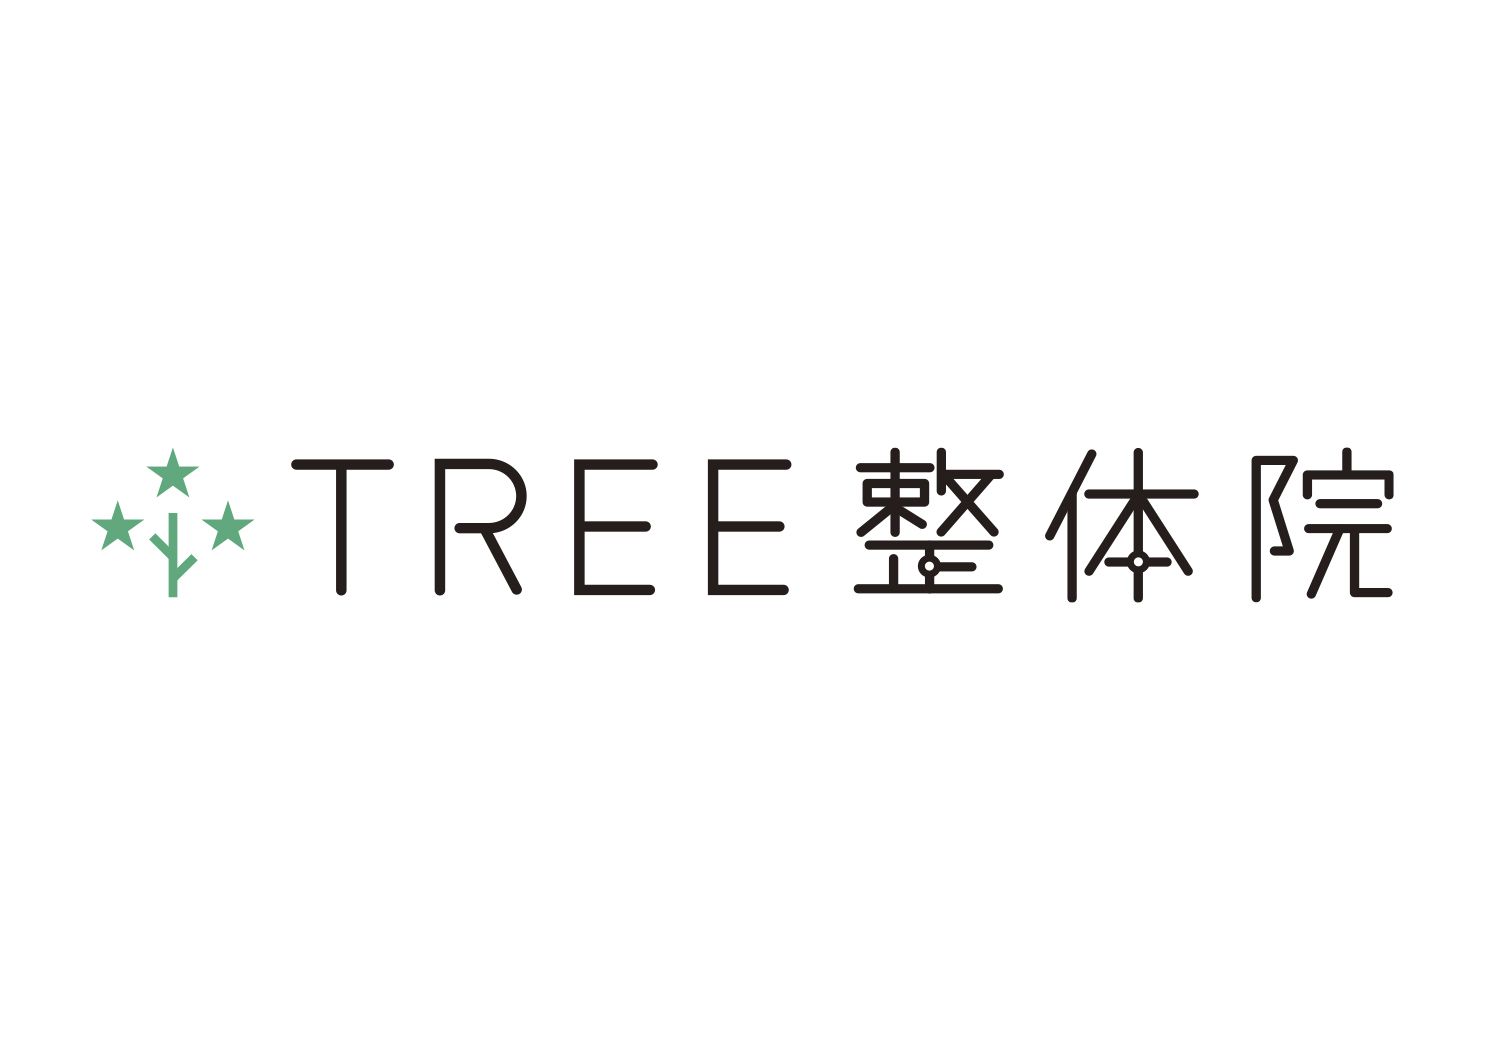 TREE Chiropractic clinic logo